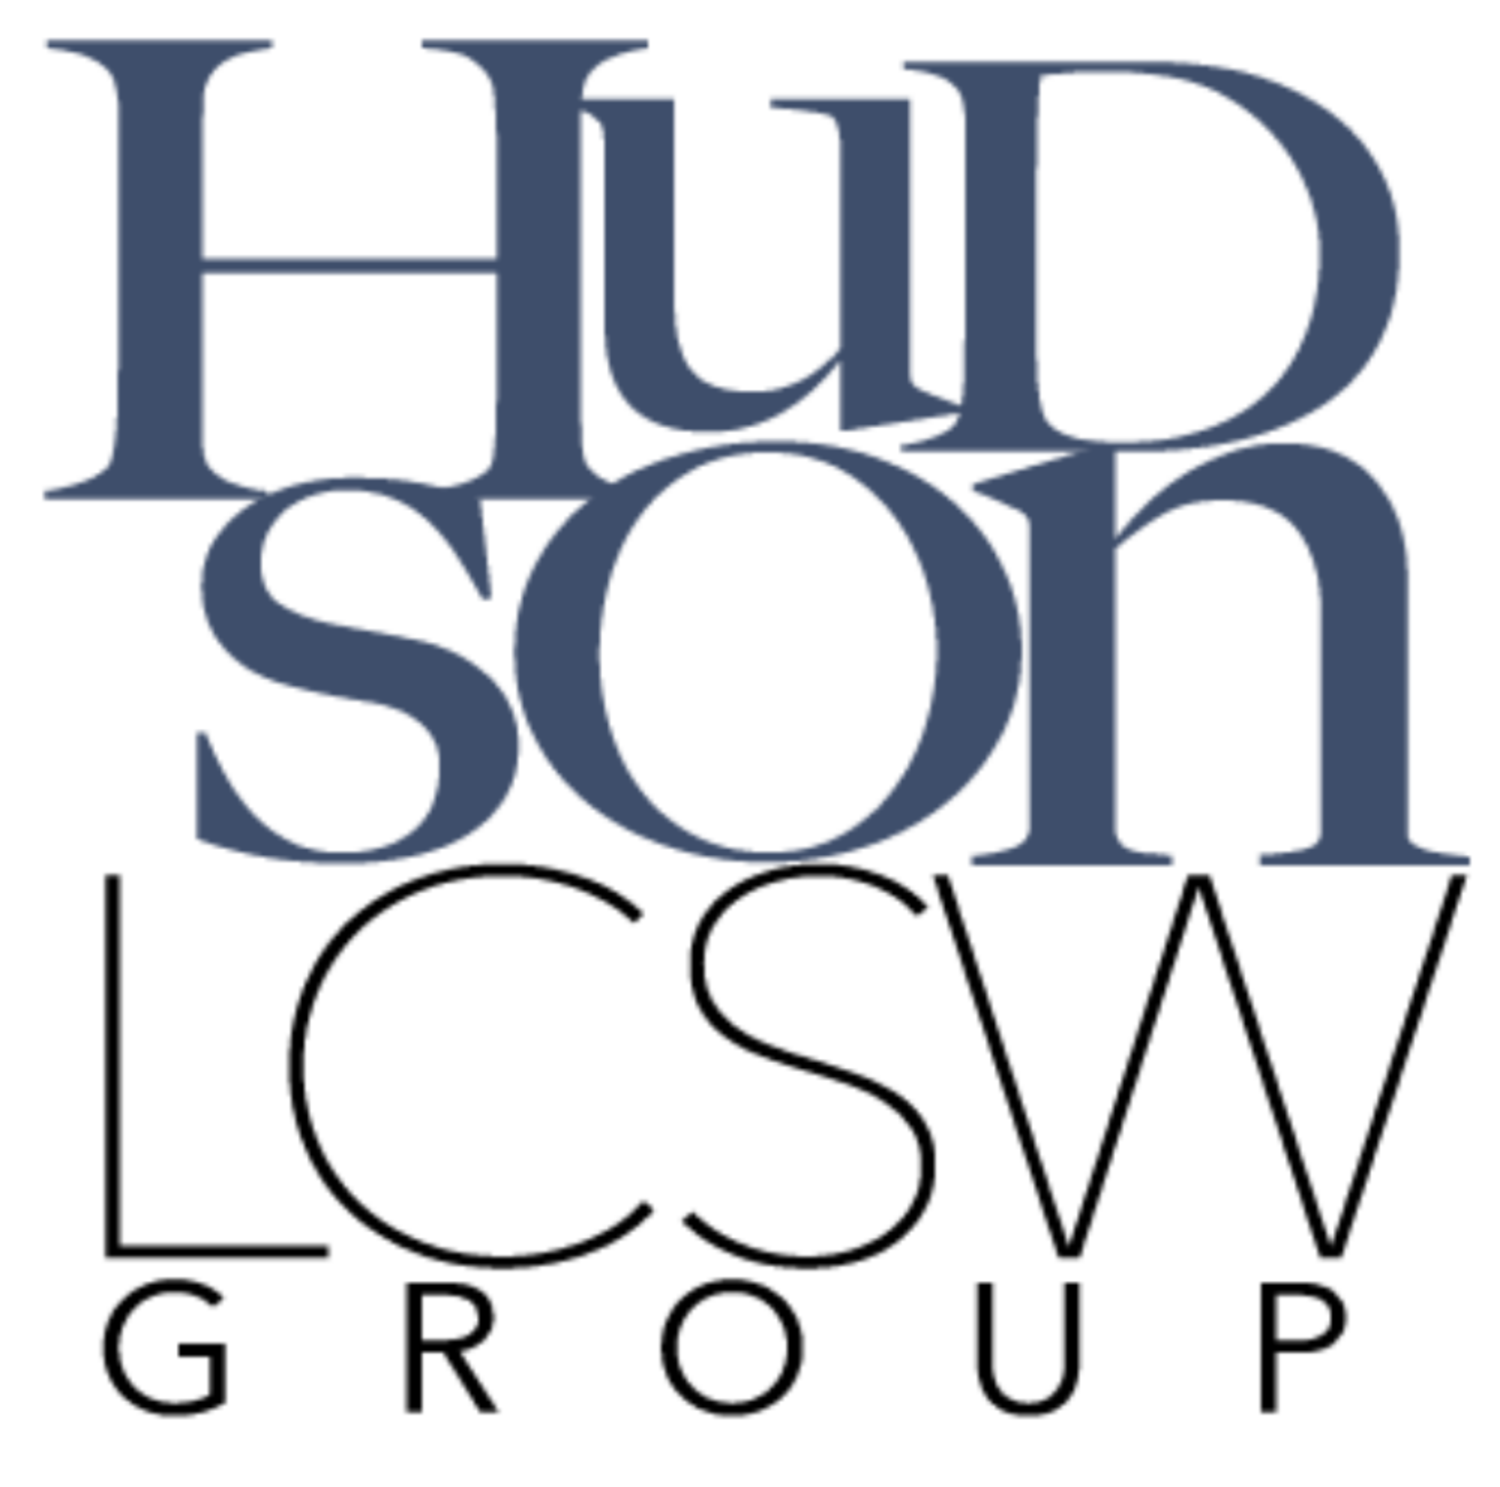 Hudson LCSW Group